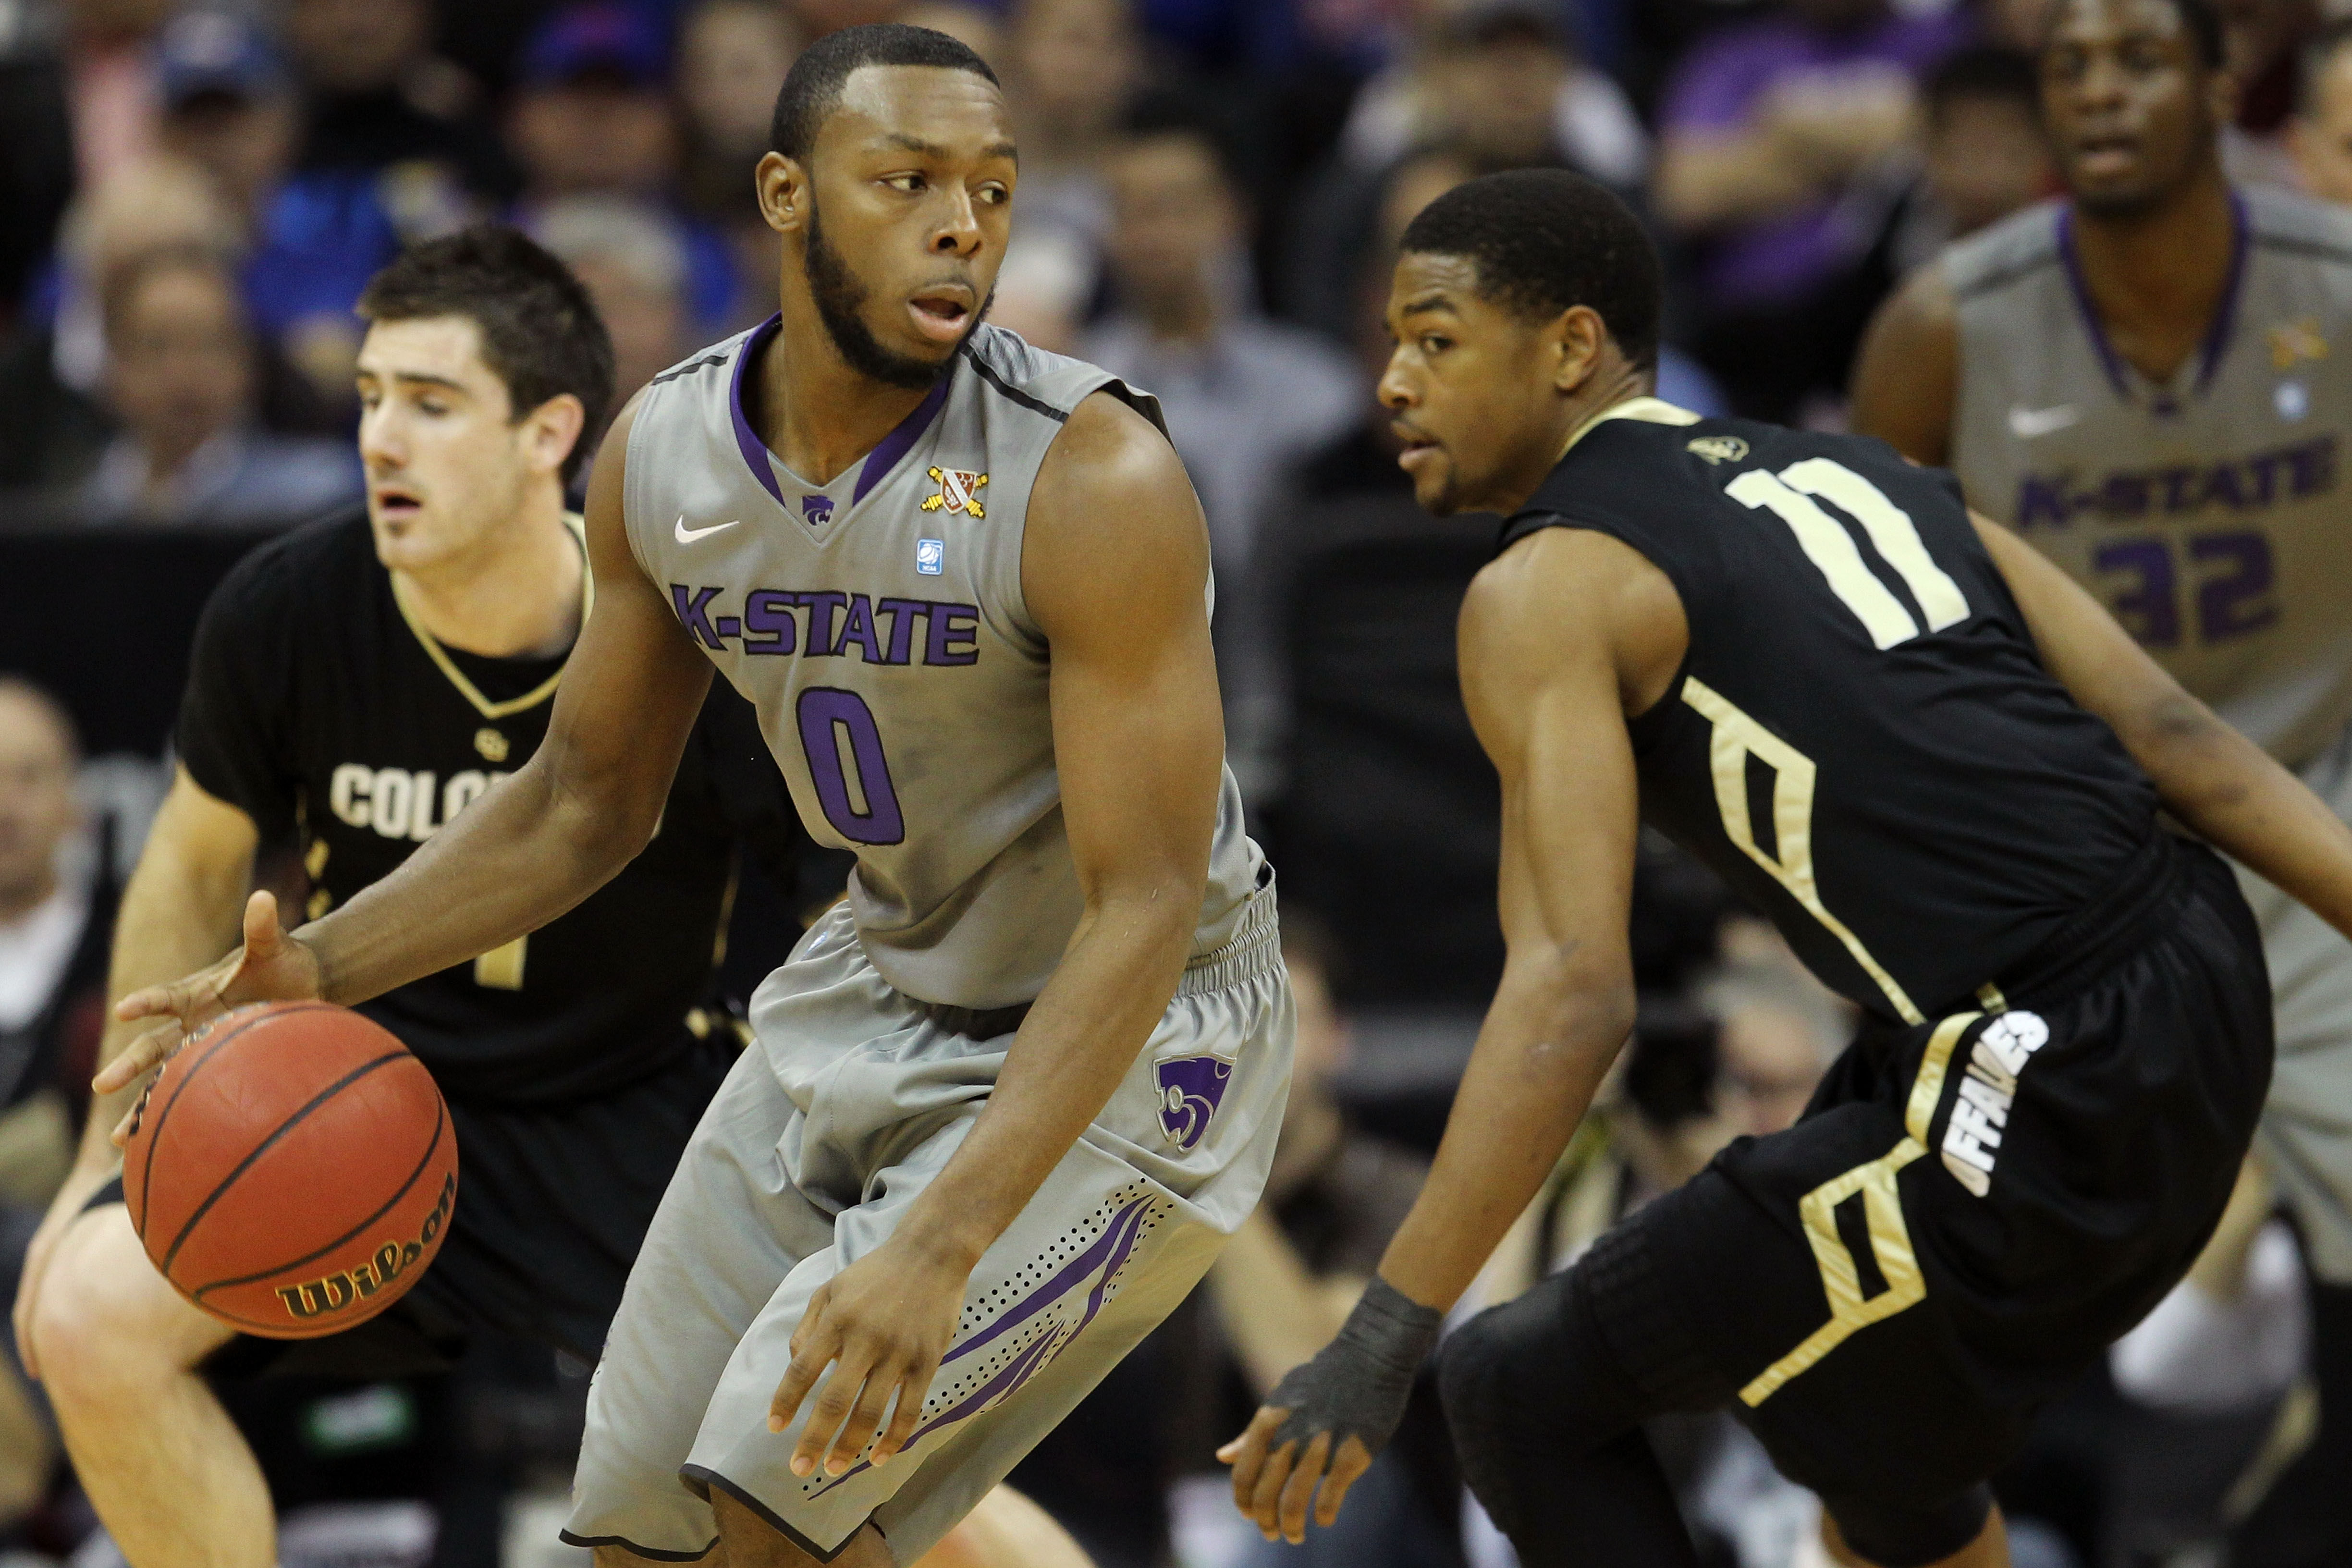 KANSAS CITY, MO - MARCH 10:  Jacob Pullen #0 of the Kansas State Wildcats looks to move the ball against the Colorado Buffaloes during their quarterfinal game in the 2011 Phillips 66 Big 12 Men's Basketball Tournament at Sprint Center on March 10, 2011 in